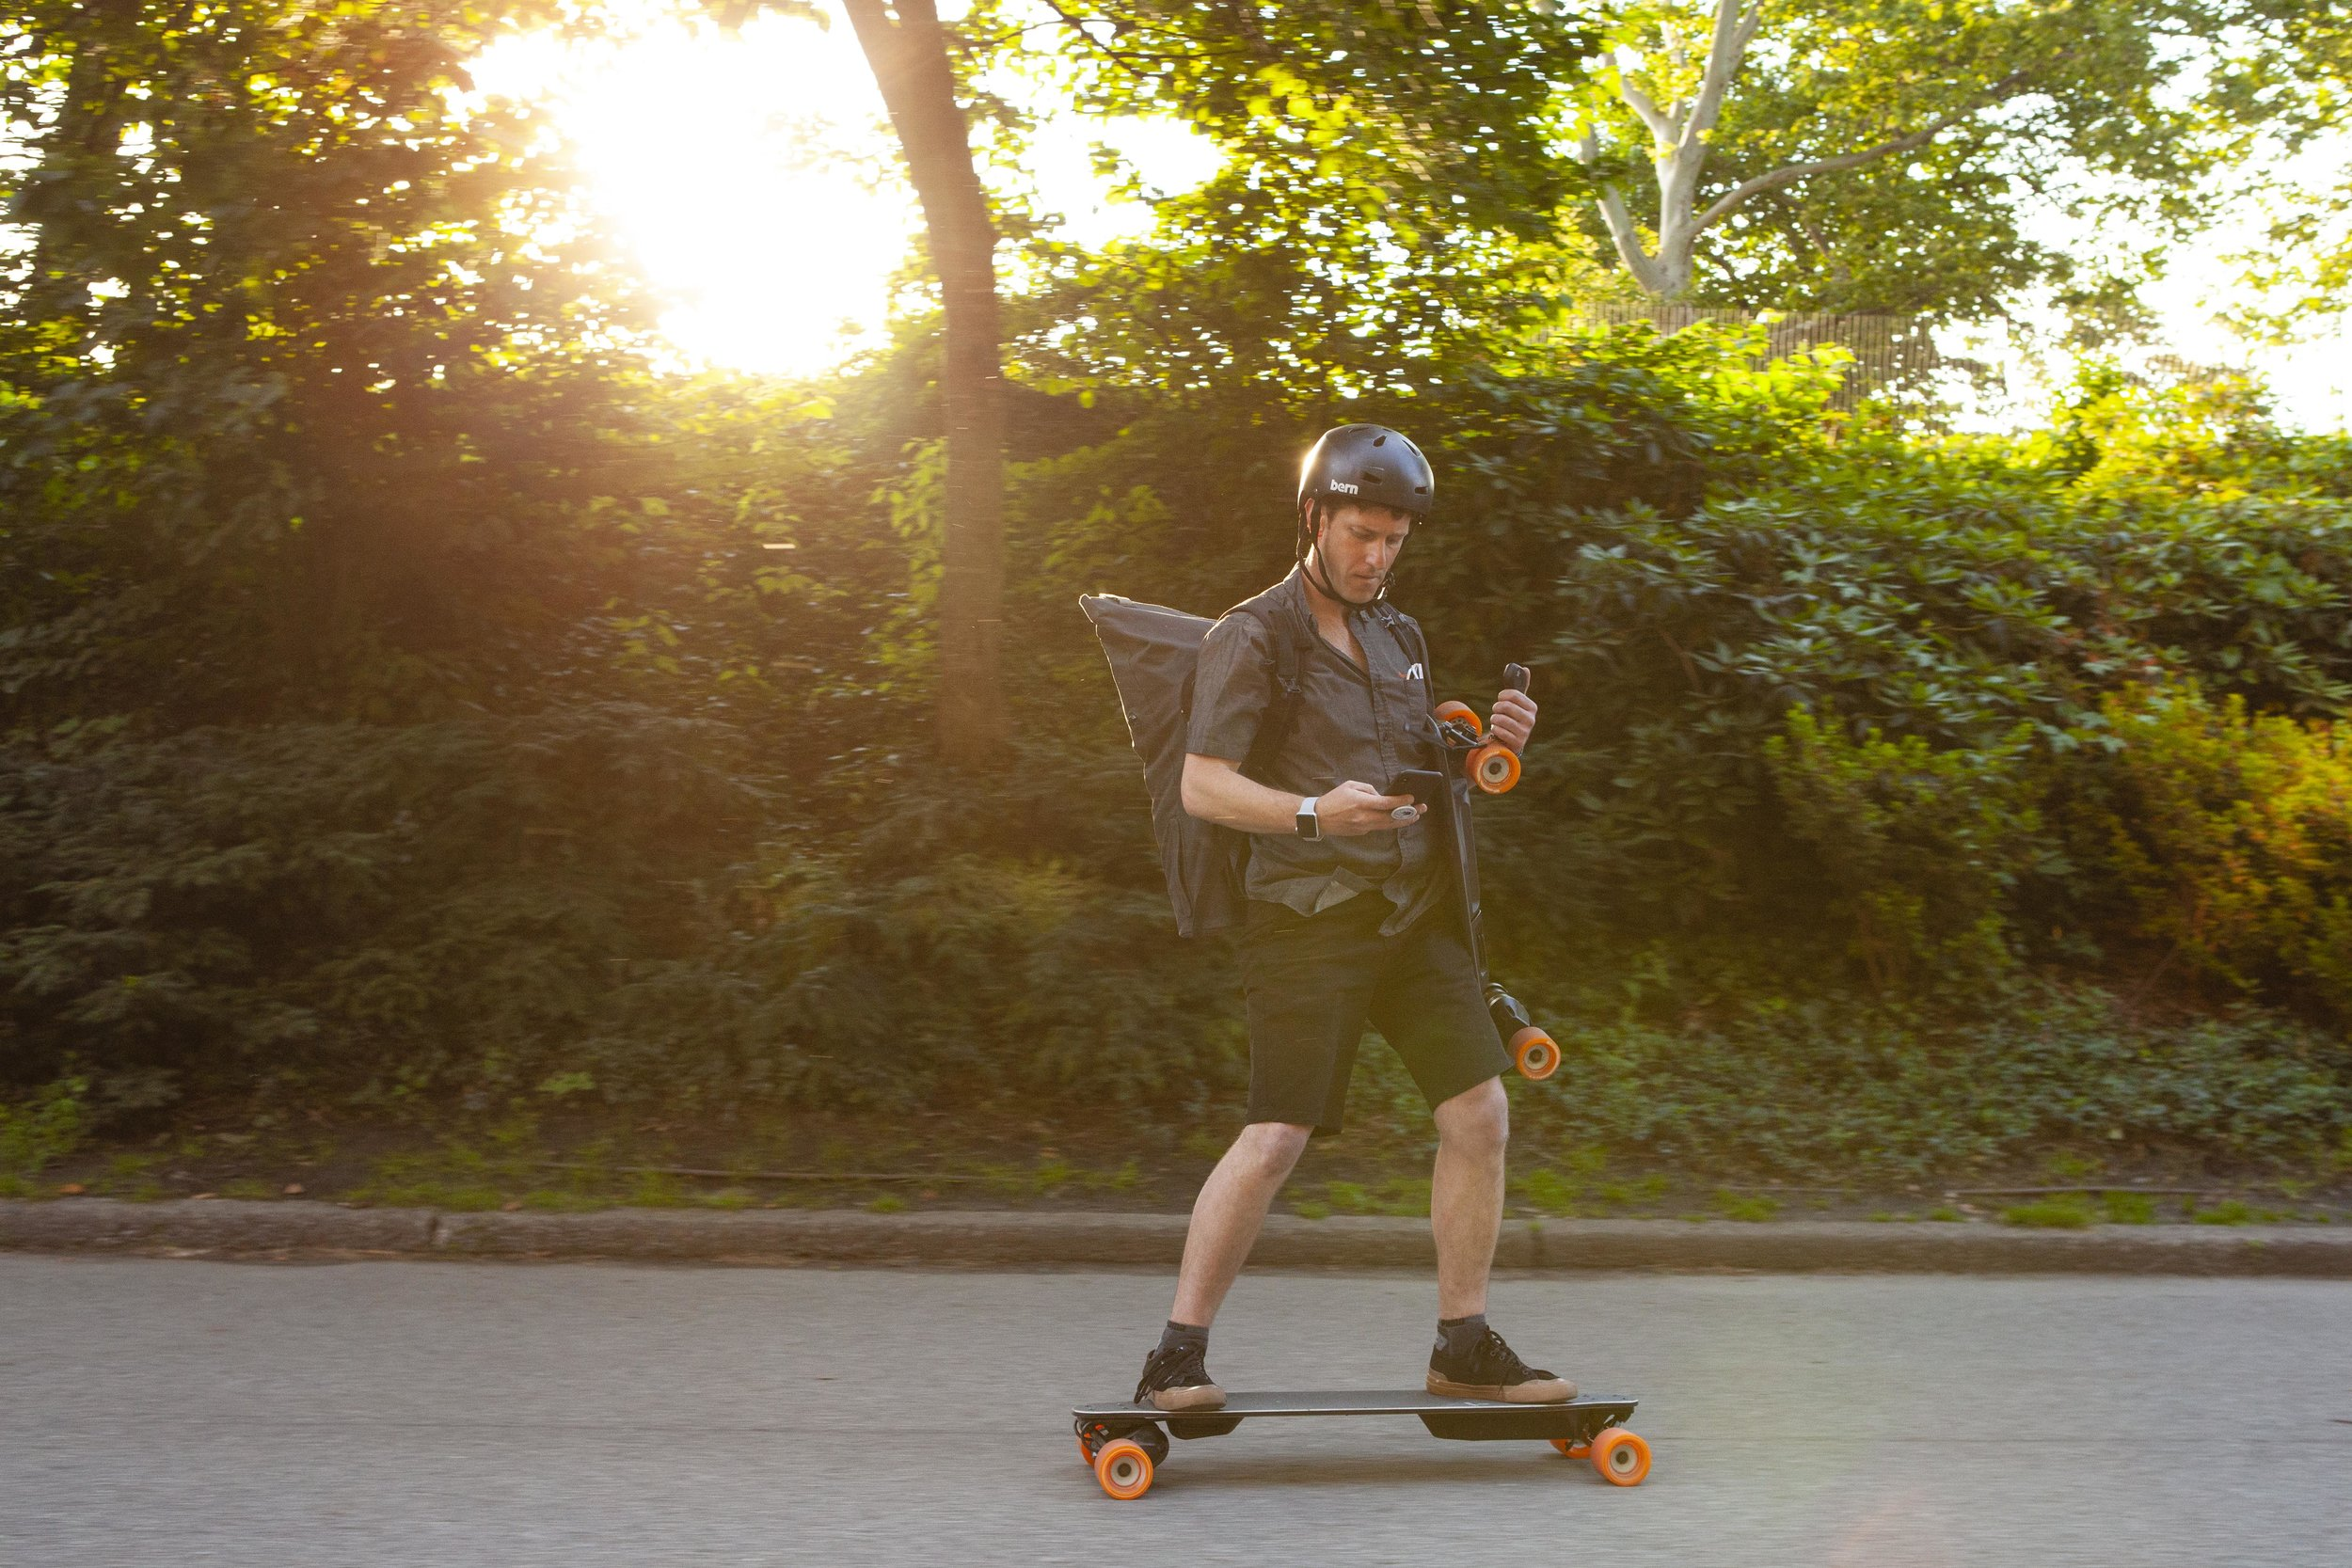 One time I saw Bobby riding down the West Side Highway on a Boosted Plus with a board in the Boosted Backpack, another in his hand, while texting. He claims to be able to handle 5 boards at once while riding. I don't doubt it...